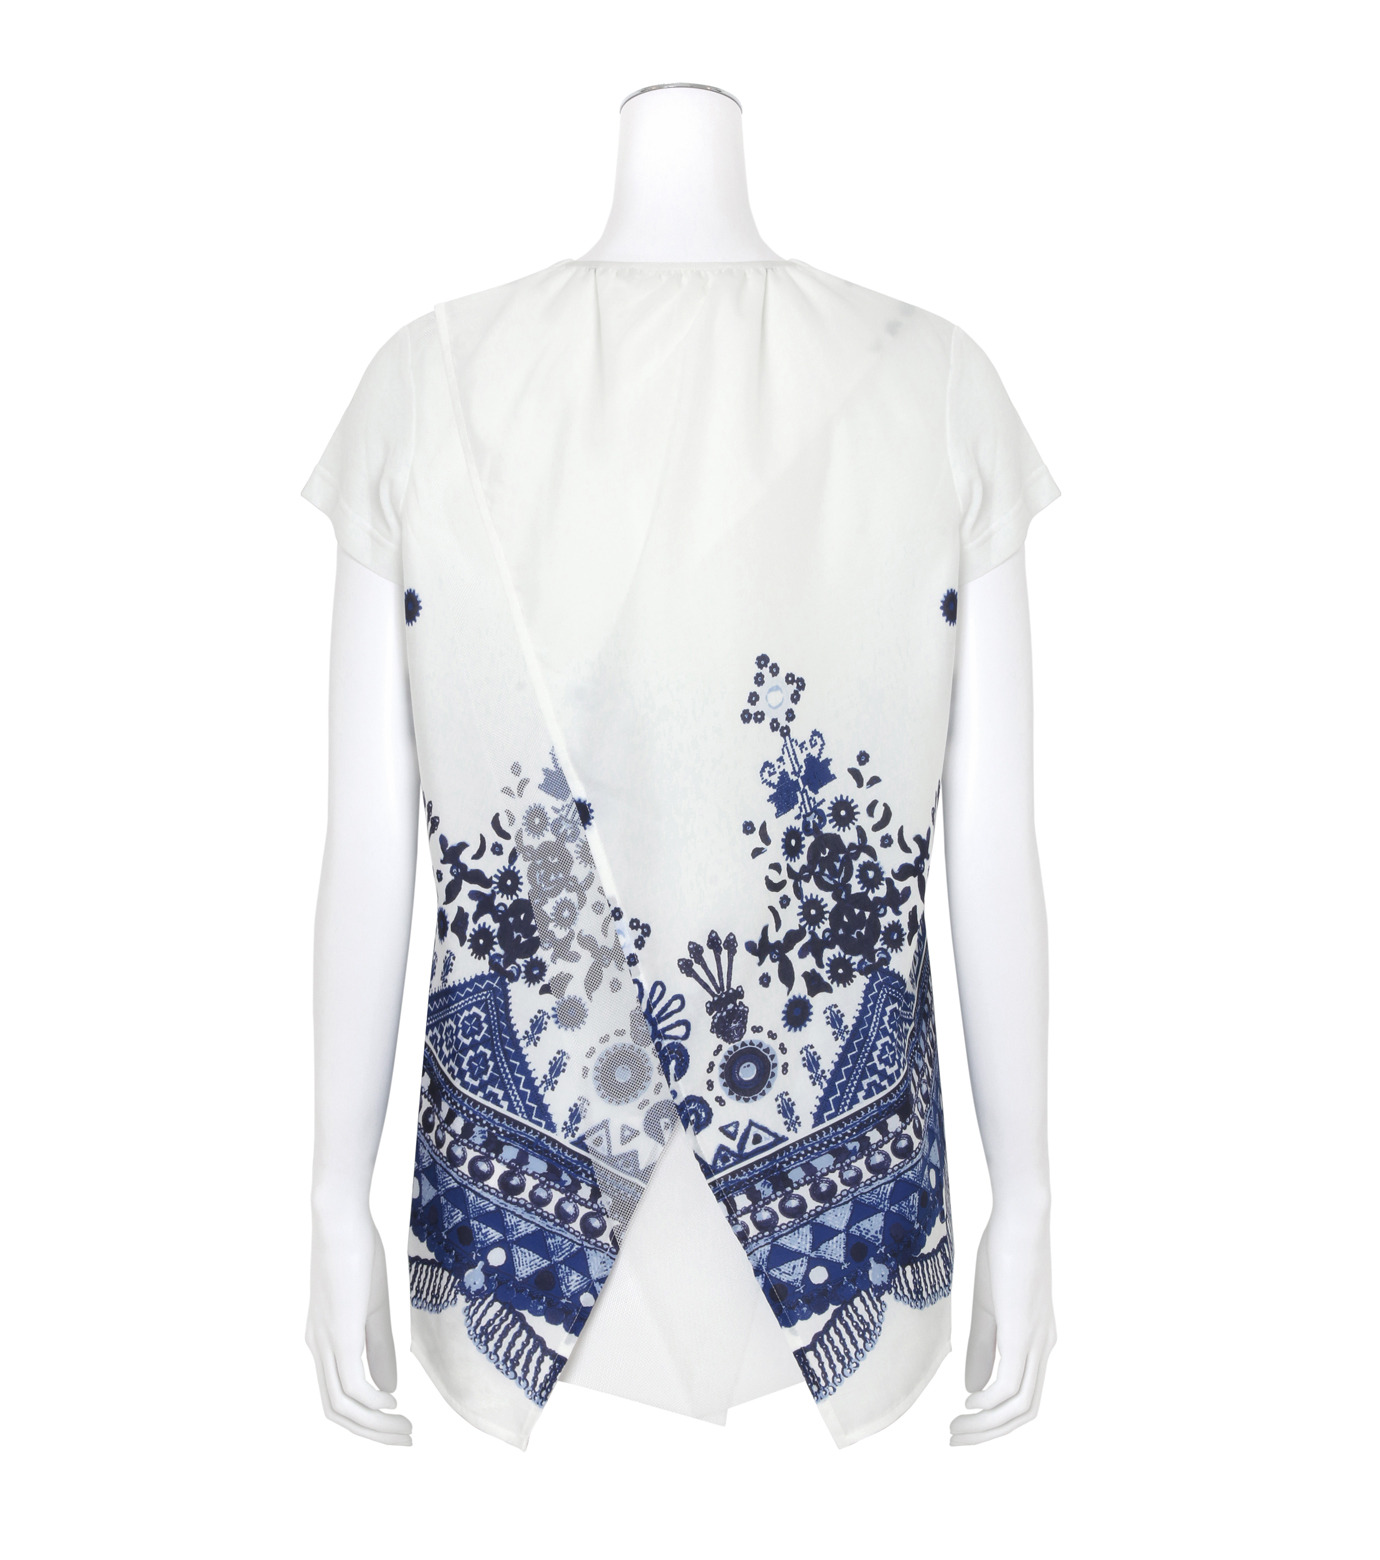 Sacai(サカイ)のTribal Lace Print Tees-WHITE(カットソー/cut and sewn)-17-02947-4 拡大詳細画像2